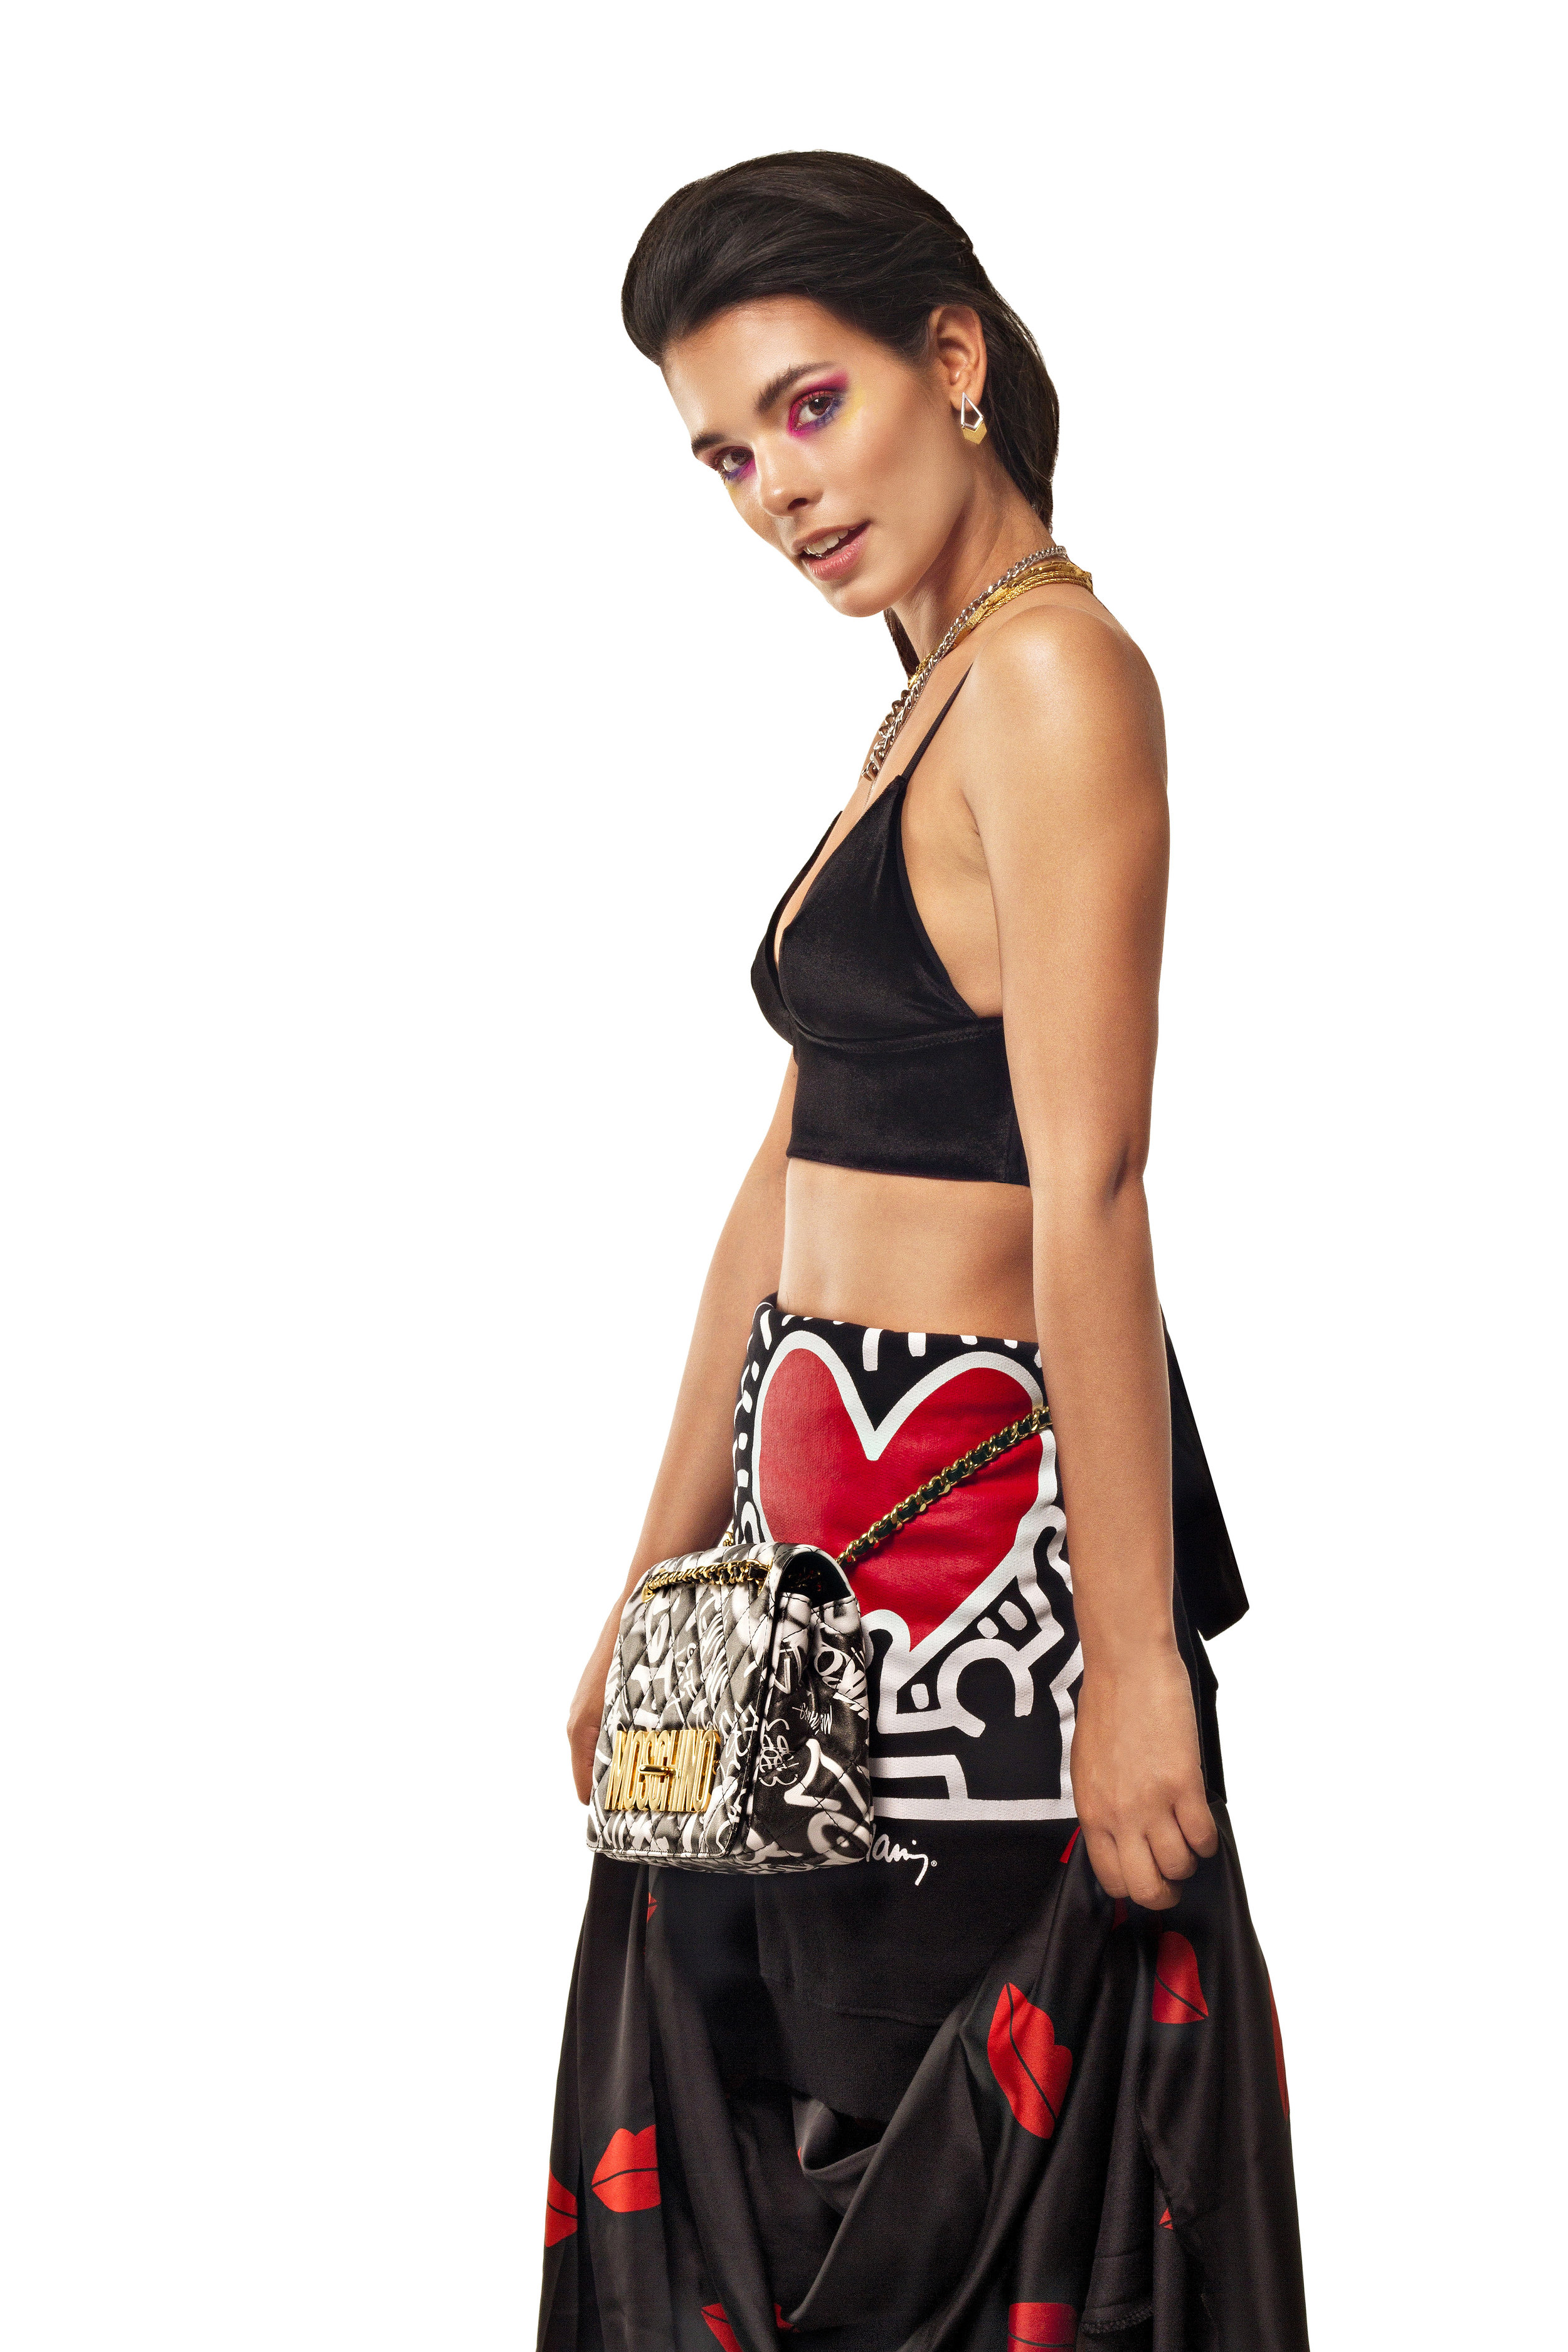 Top  H&M ,Customized skirt  Production's own ,Bag  Moschino at D'Adélia Store,Sweatshirt  Keith Haring  for Pull &Bear ,Gold and Silver earrings  Pessoa e Melo Jewelry, Golden choker  Vintage ,Silver chain necklace  Stone by Stone ,Silver Shout Out necklace  CINCO